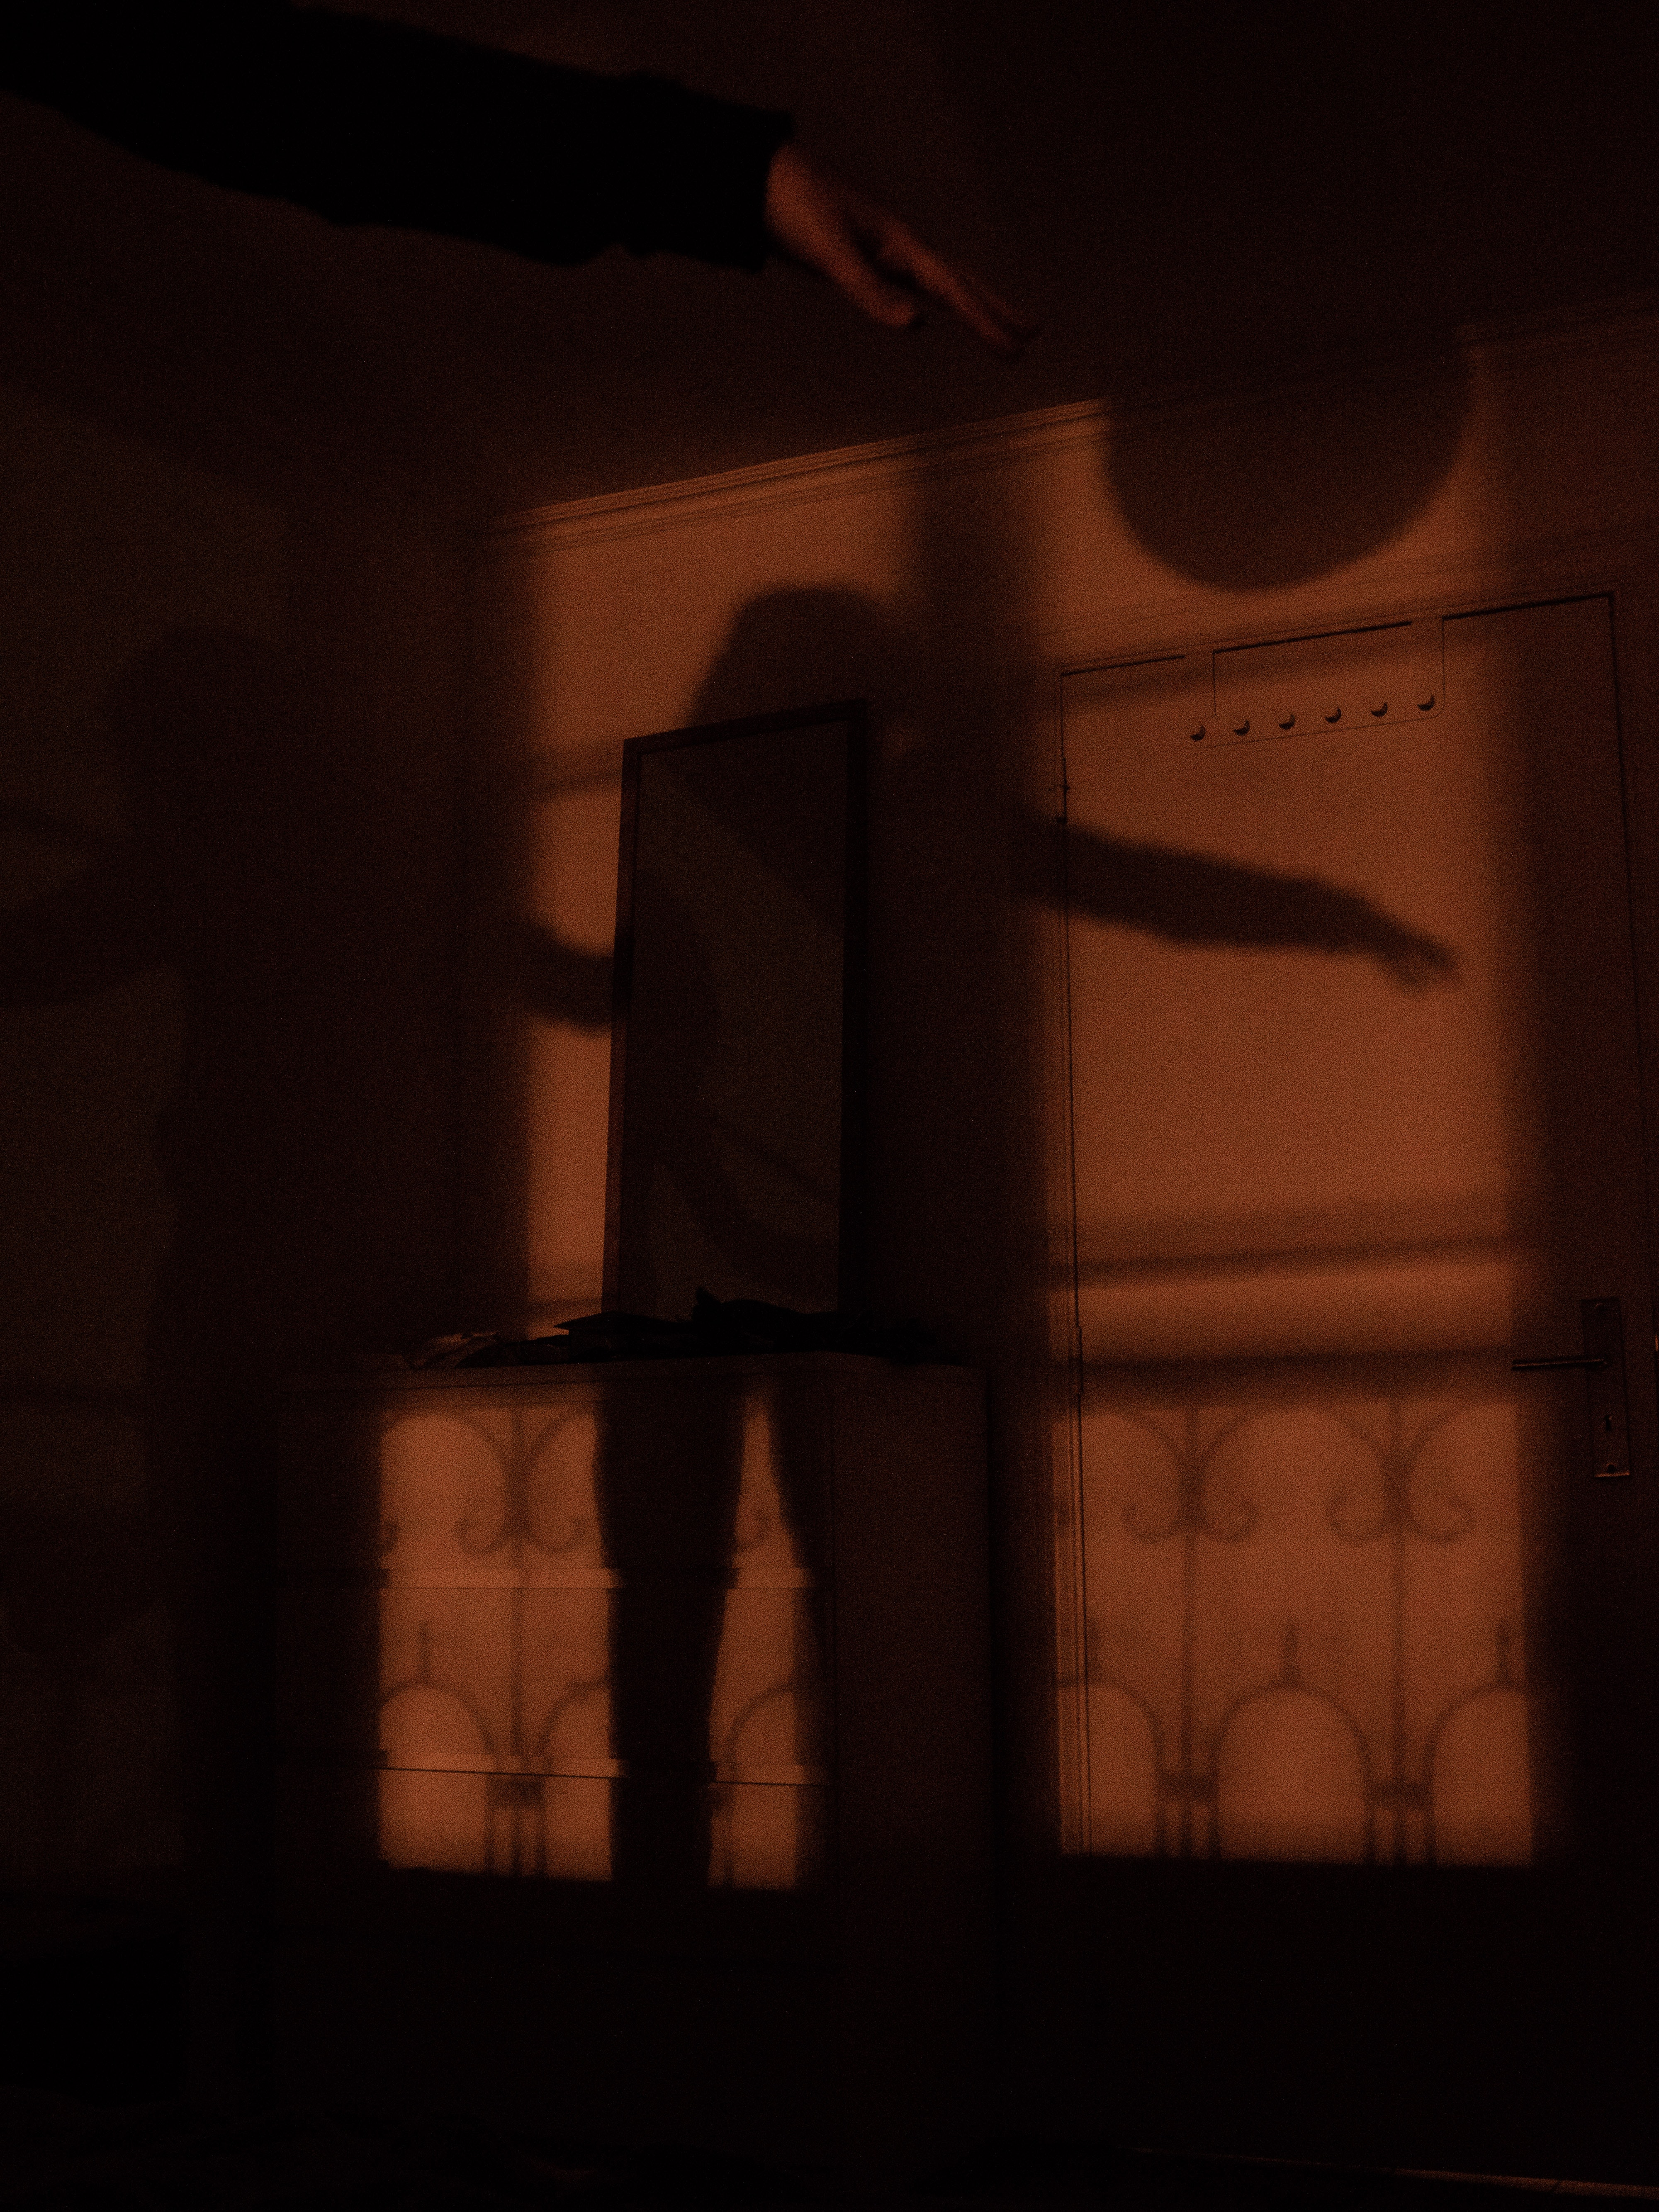 person's shadow cast on wall